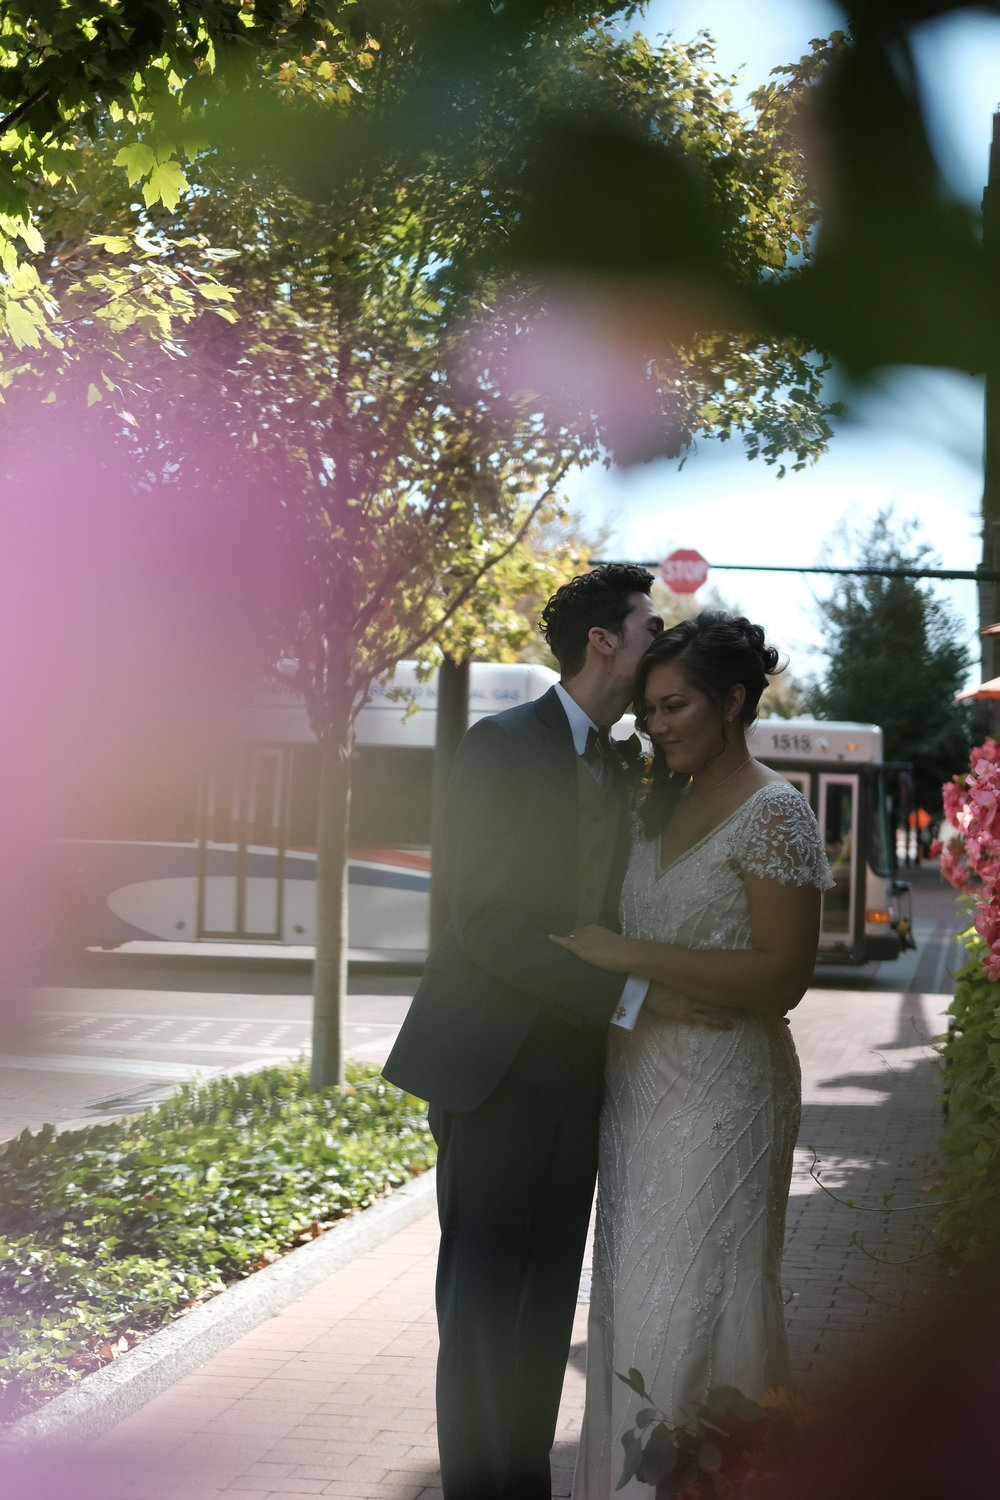 North Bank Pavilion Park Wedding - Downtown Columbus, OH - Jessica + Dean204.JPG